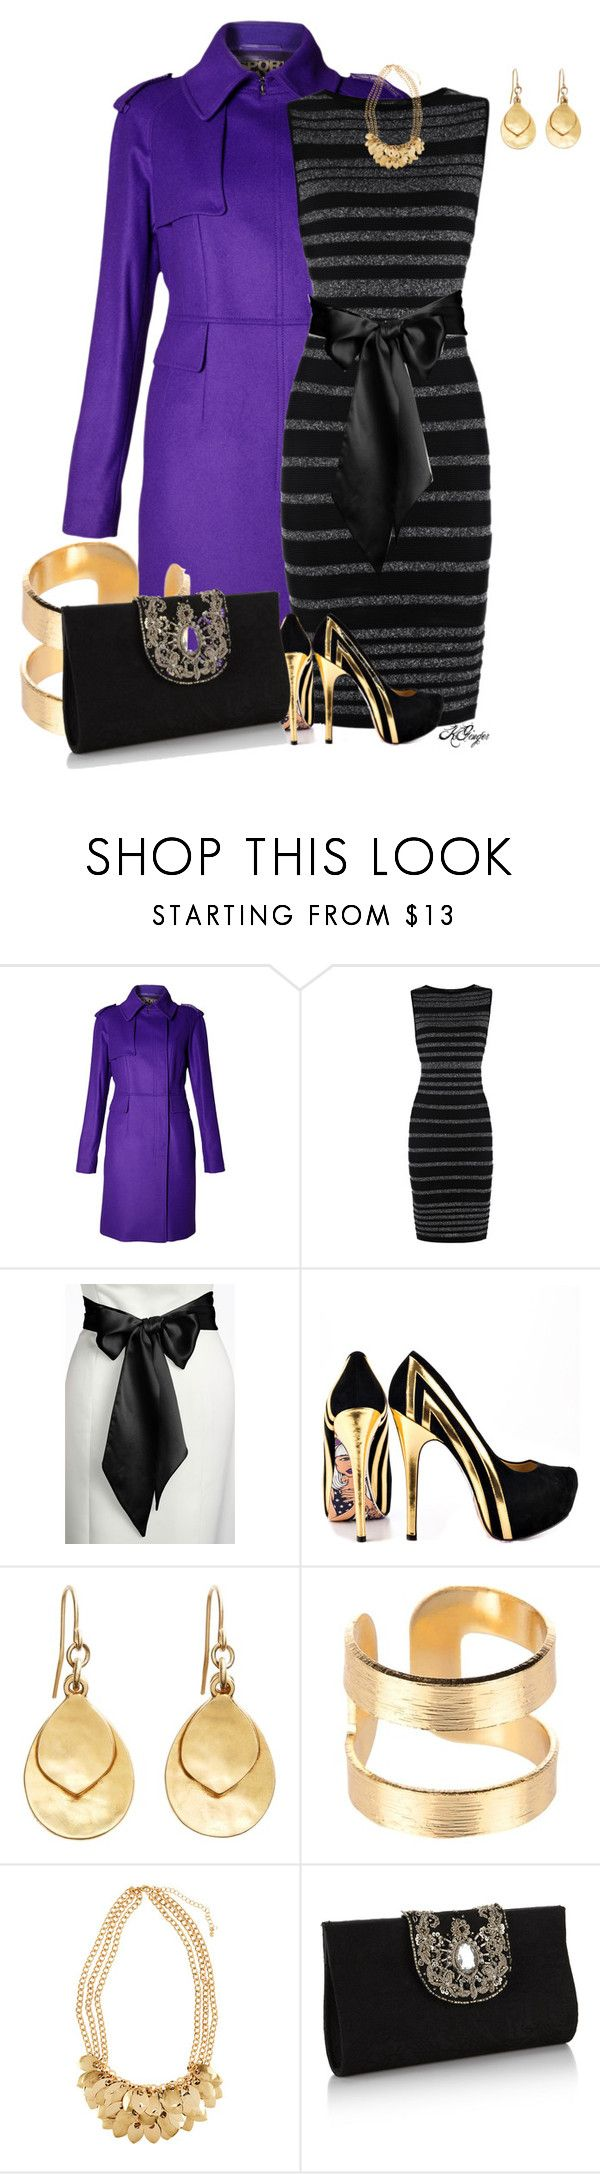 """Coast Dress Contest"" by kginger ❤ liked on Polyvore featuring Sportmax, Coast, L. Erickson, TaylorSays, Brooks Brothers, Armitage Avenue, H&M and Monsoon"